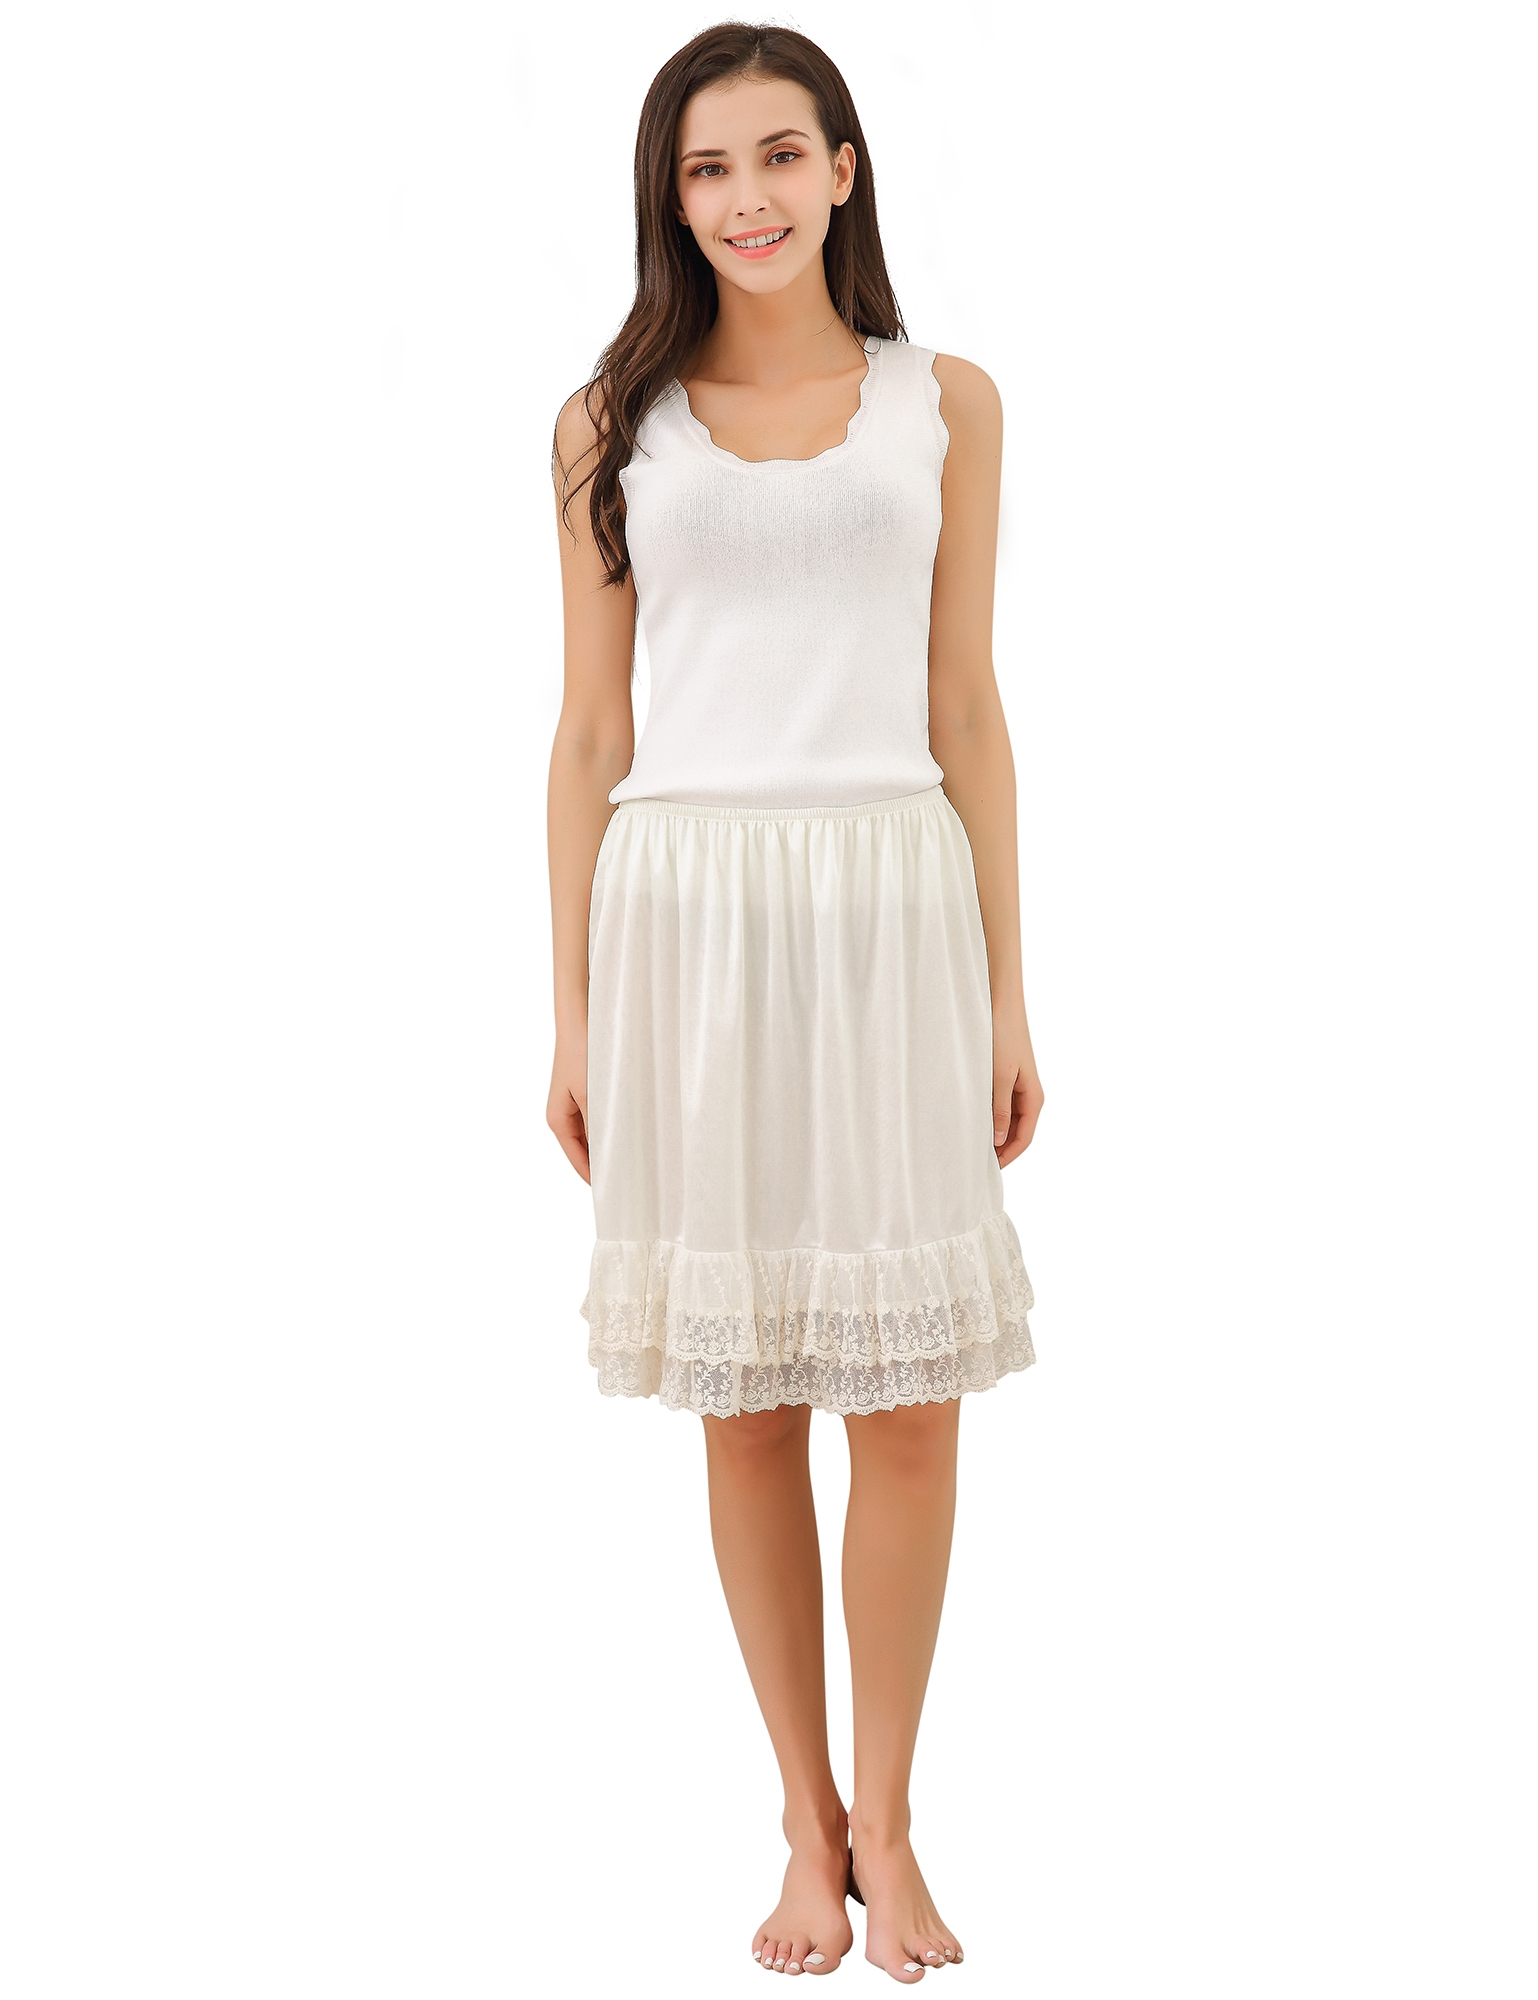 Richie House Women's Light Skirt with Lace RHW2810